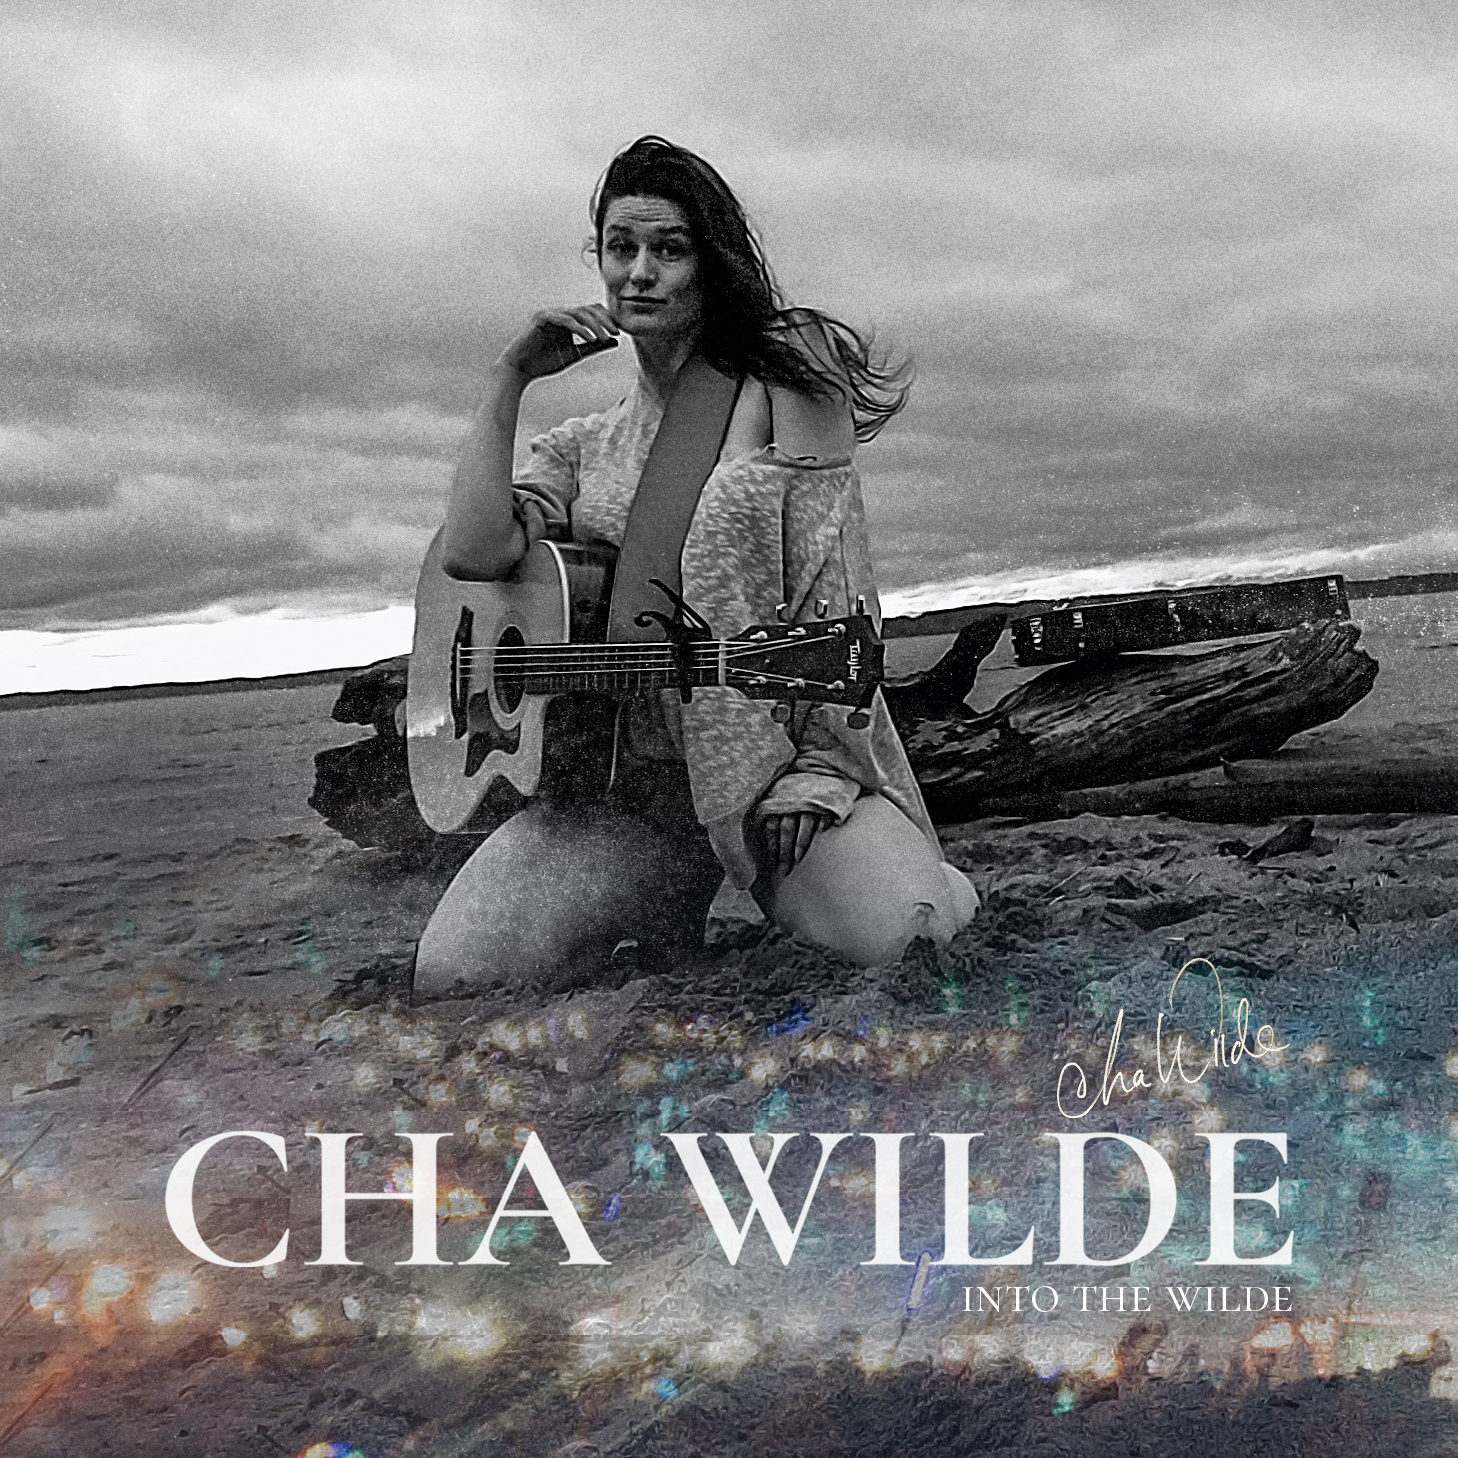 into the wilde - cover art - cha wilde.jpg